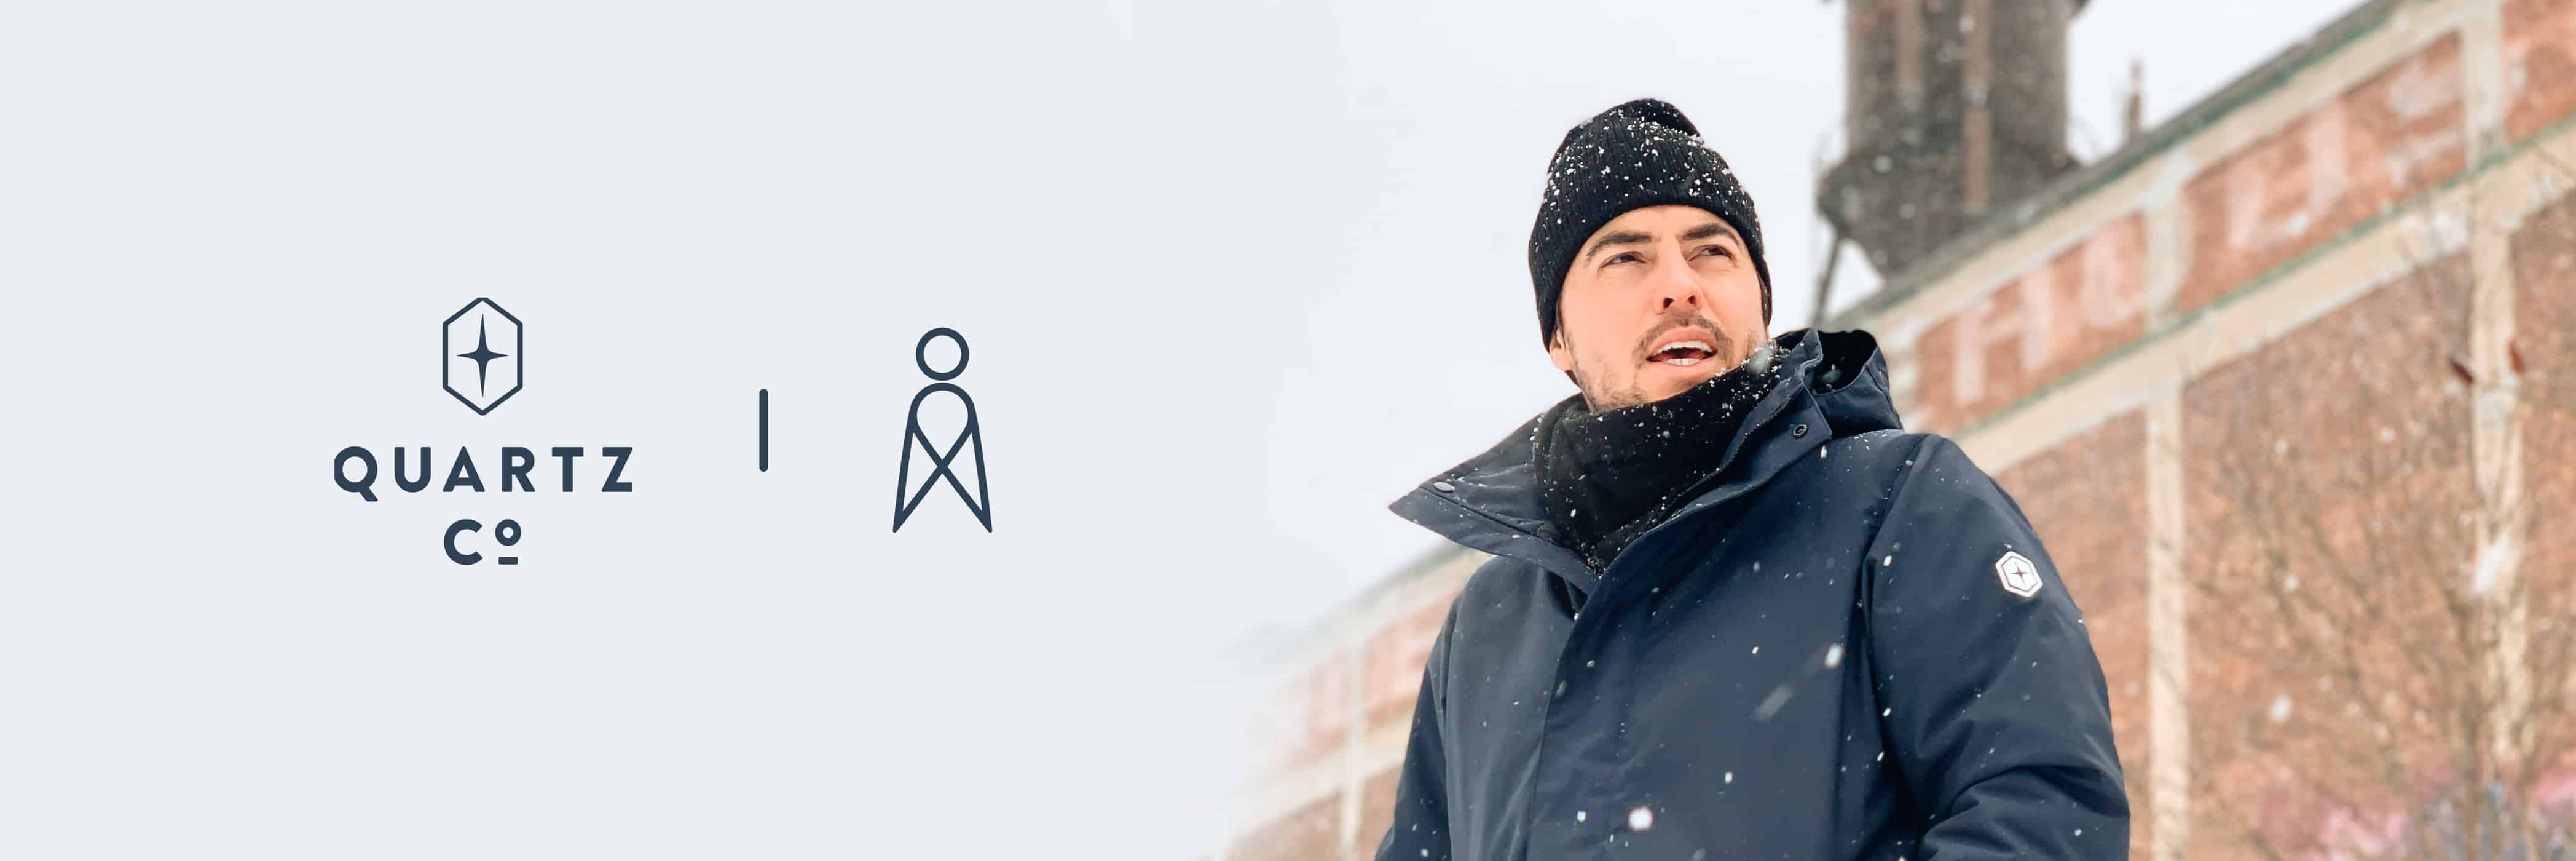 Hiver, Quartz Co.. Altitude Sports X Quartz Co. : un manteau d'hiver urbain en asclépiade